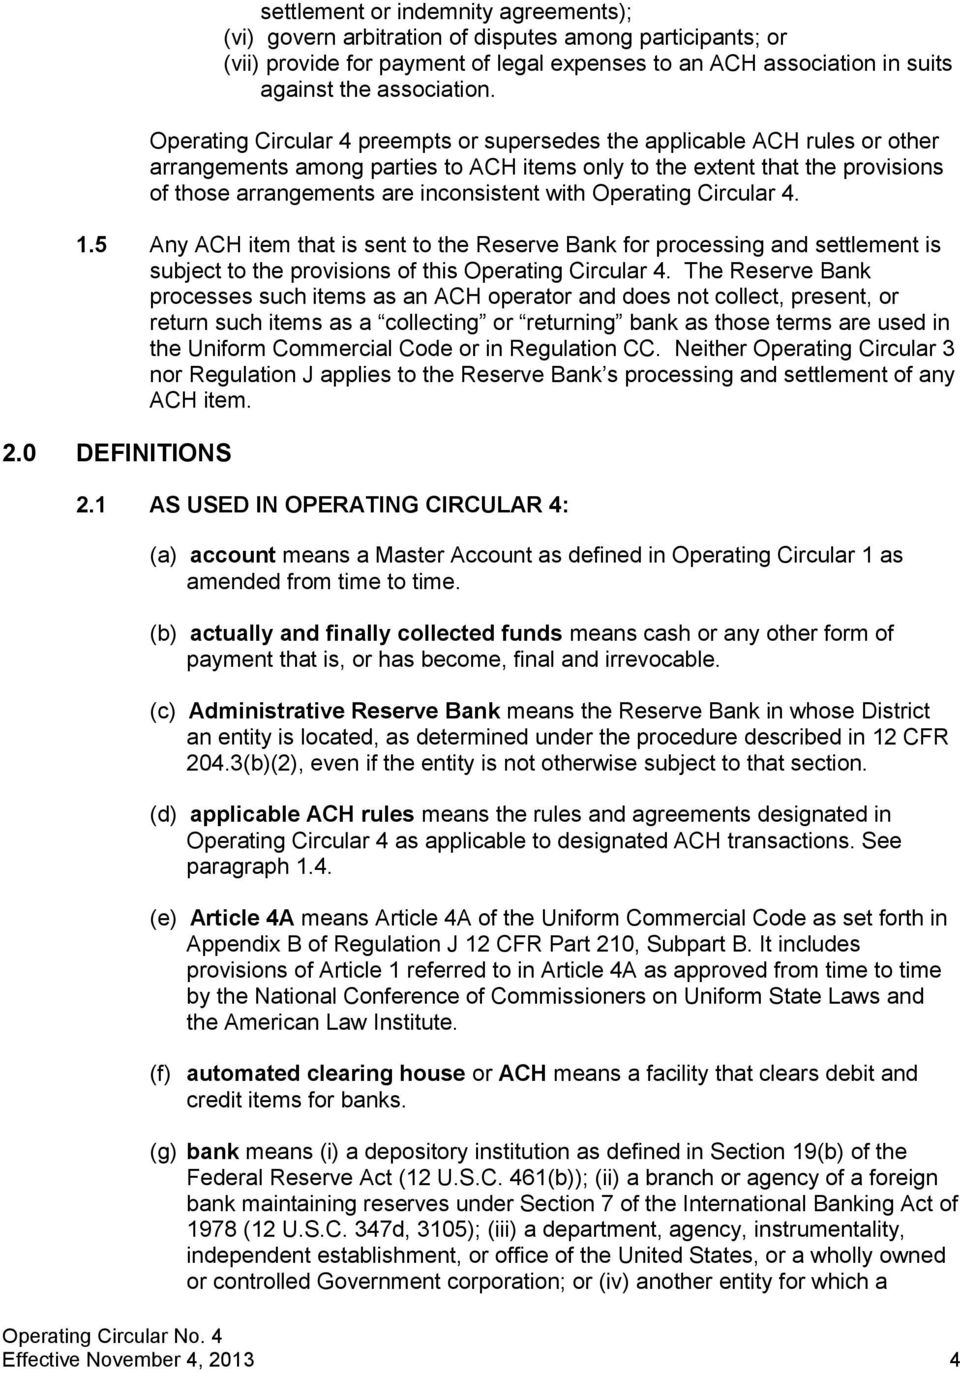 with Operating Circular 4. 1.5 Any ACH item that is sent to the Reserve Bank for processing and settlement is subject to the provisions of this Operating Circular 4.